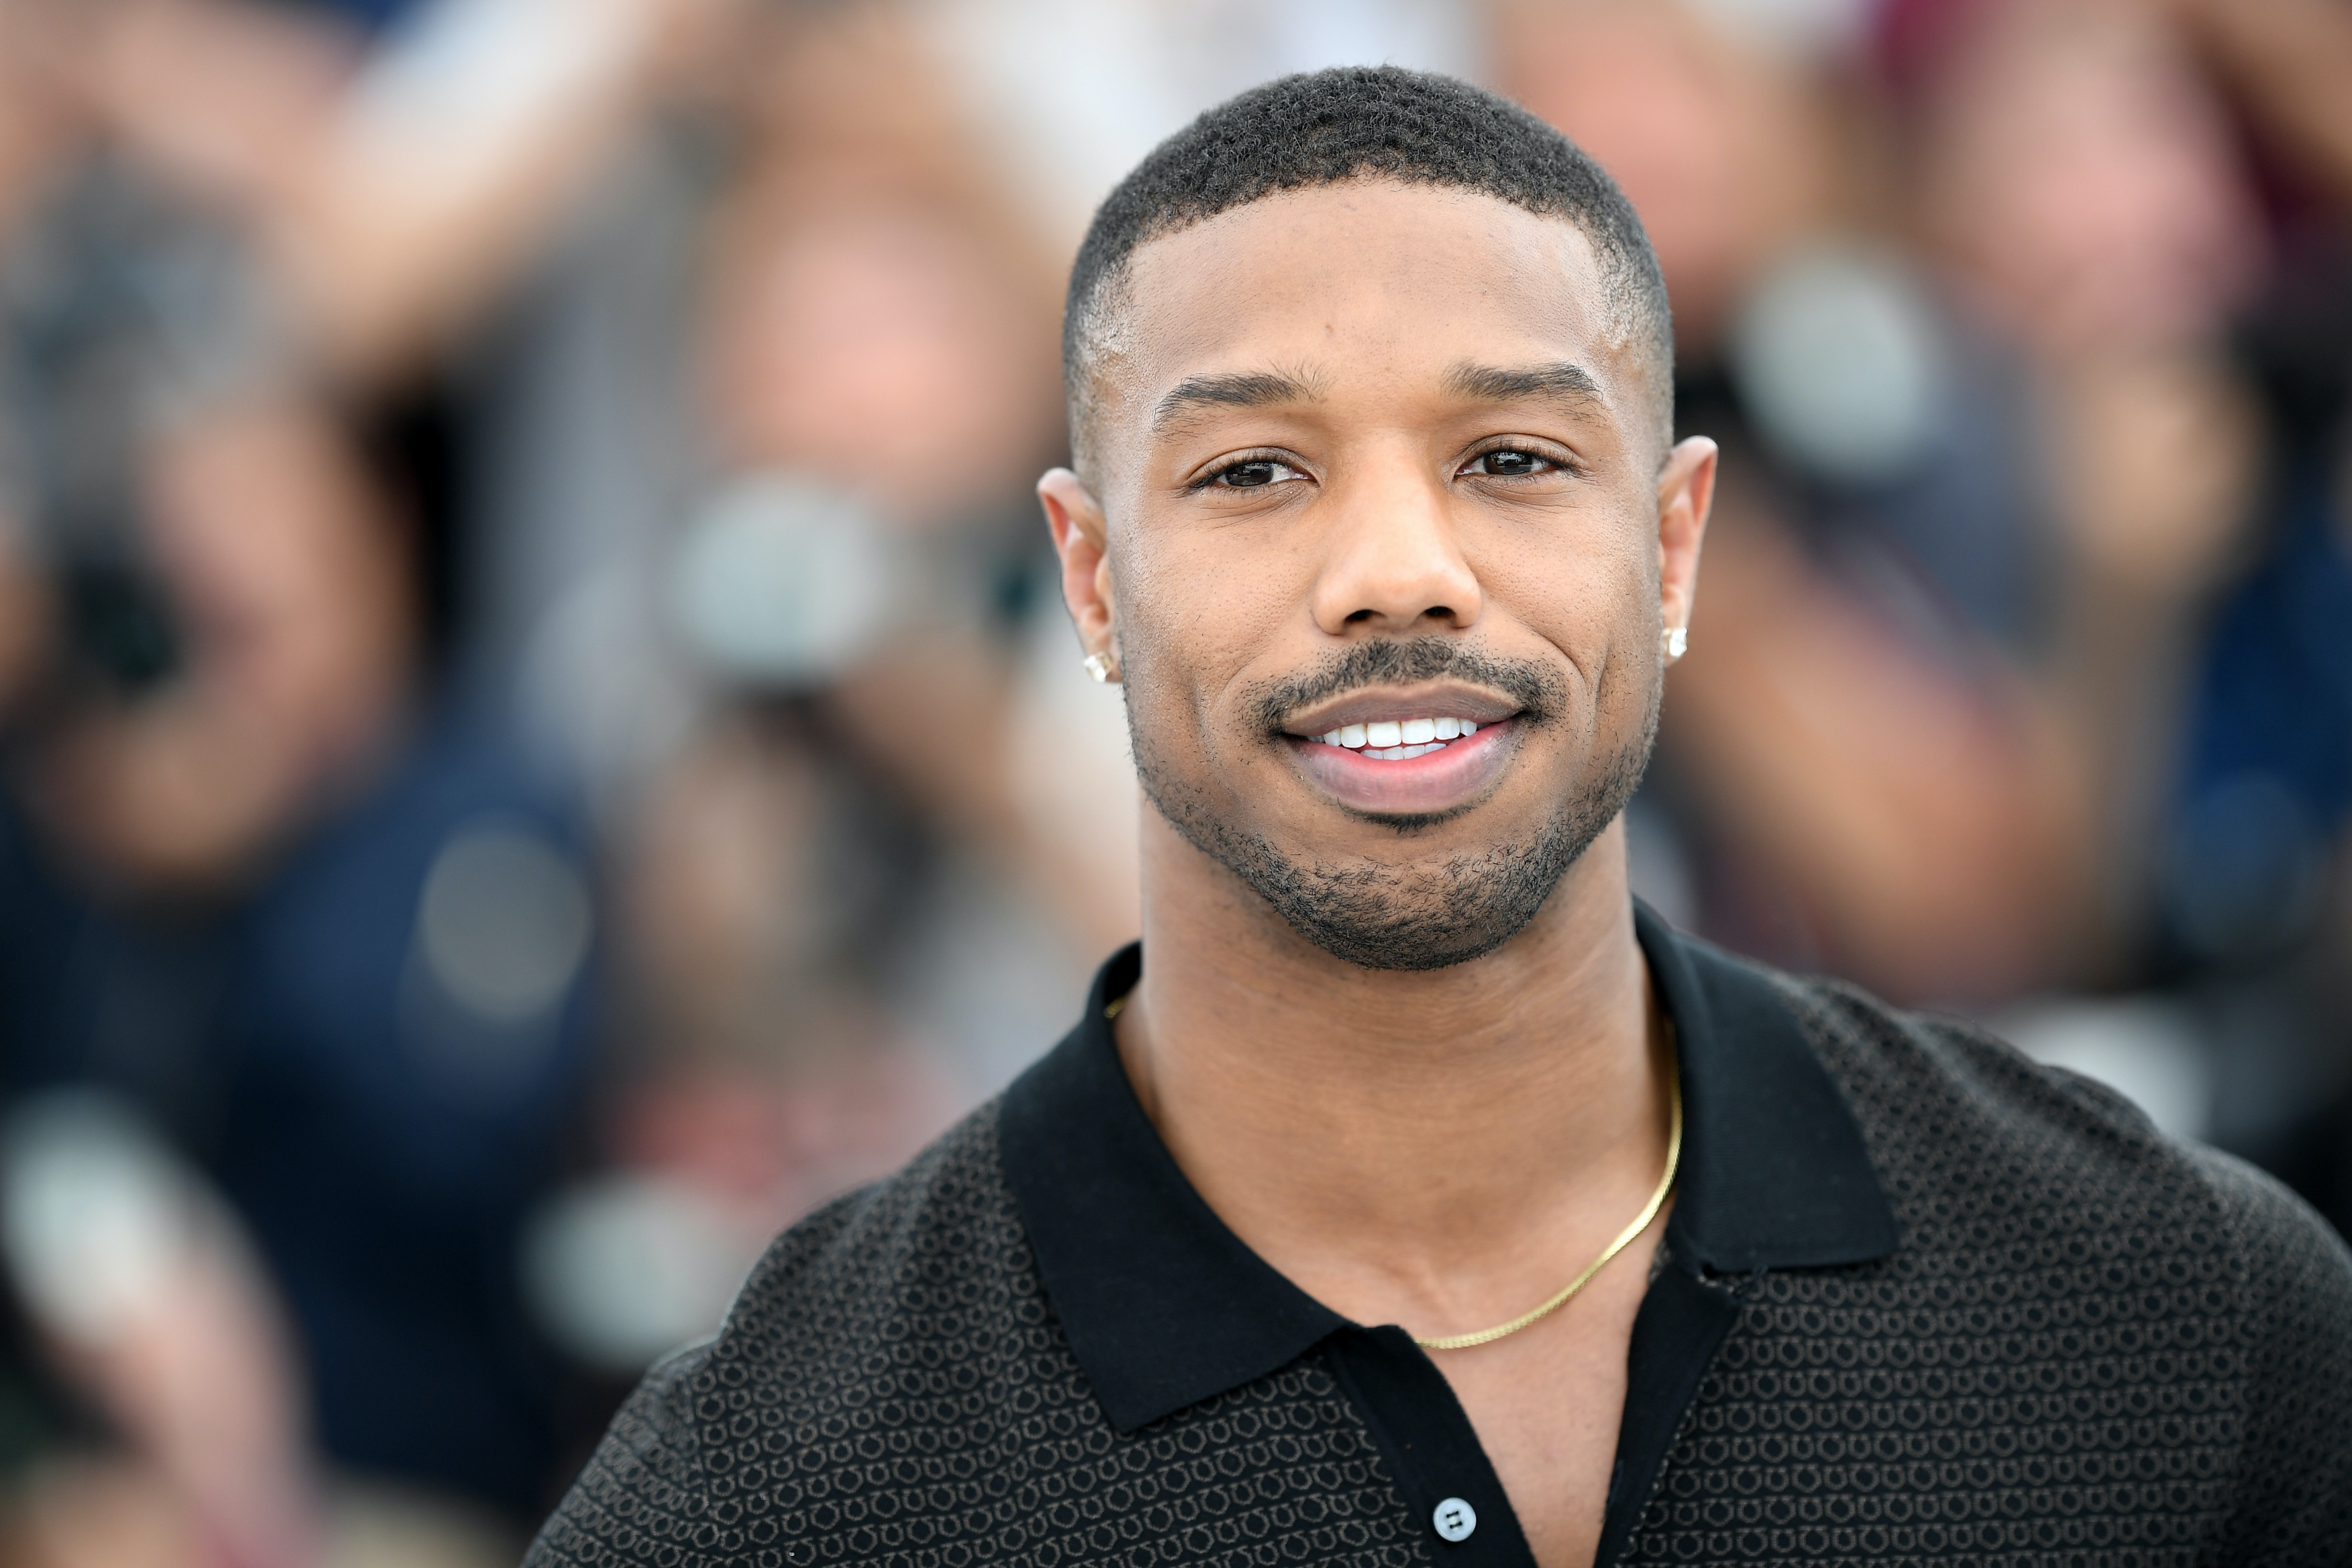 Who Is Michael B Jordan Dating In 2018 The Actor Has Embraced